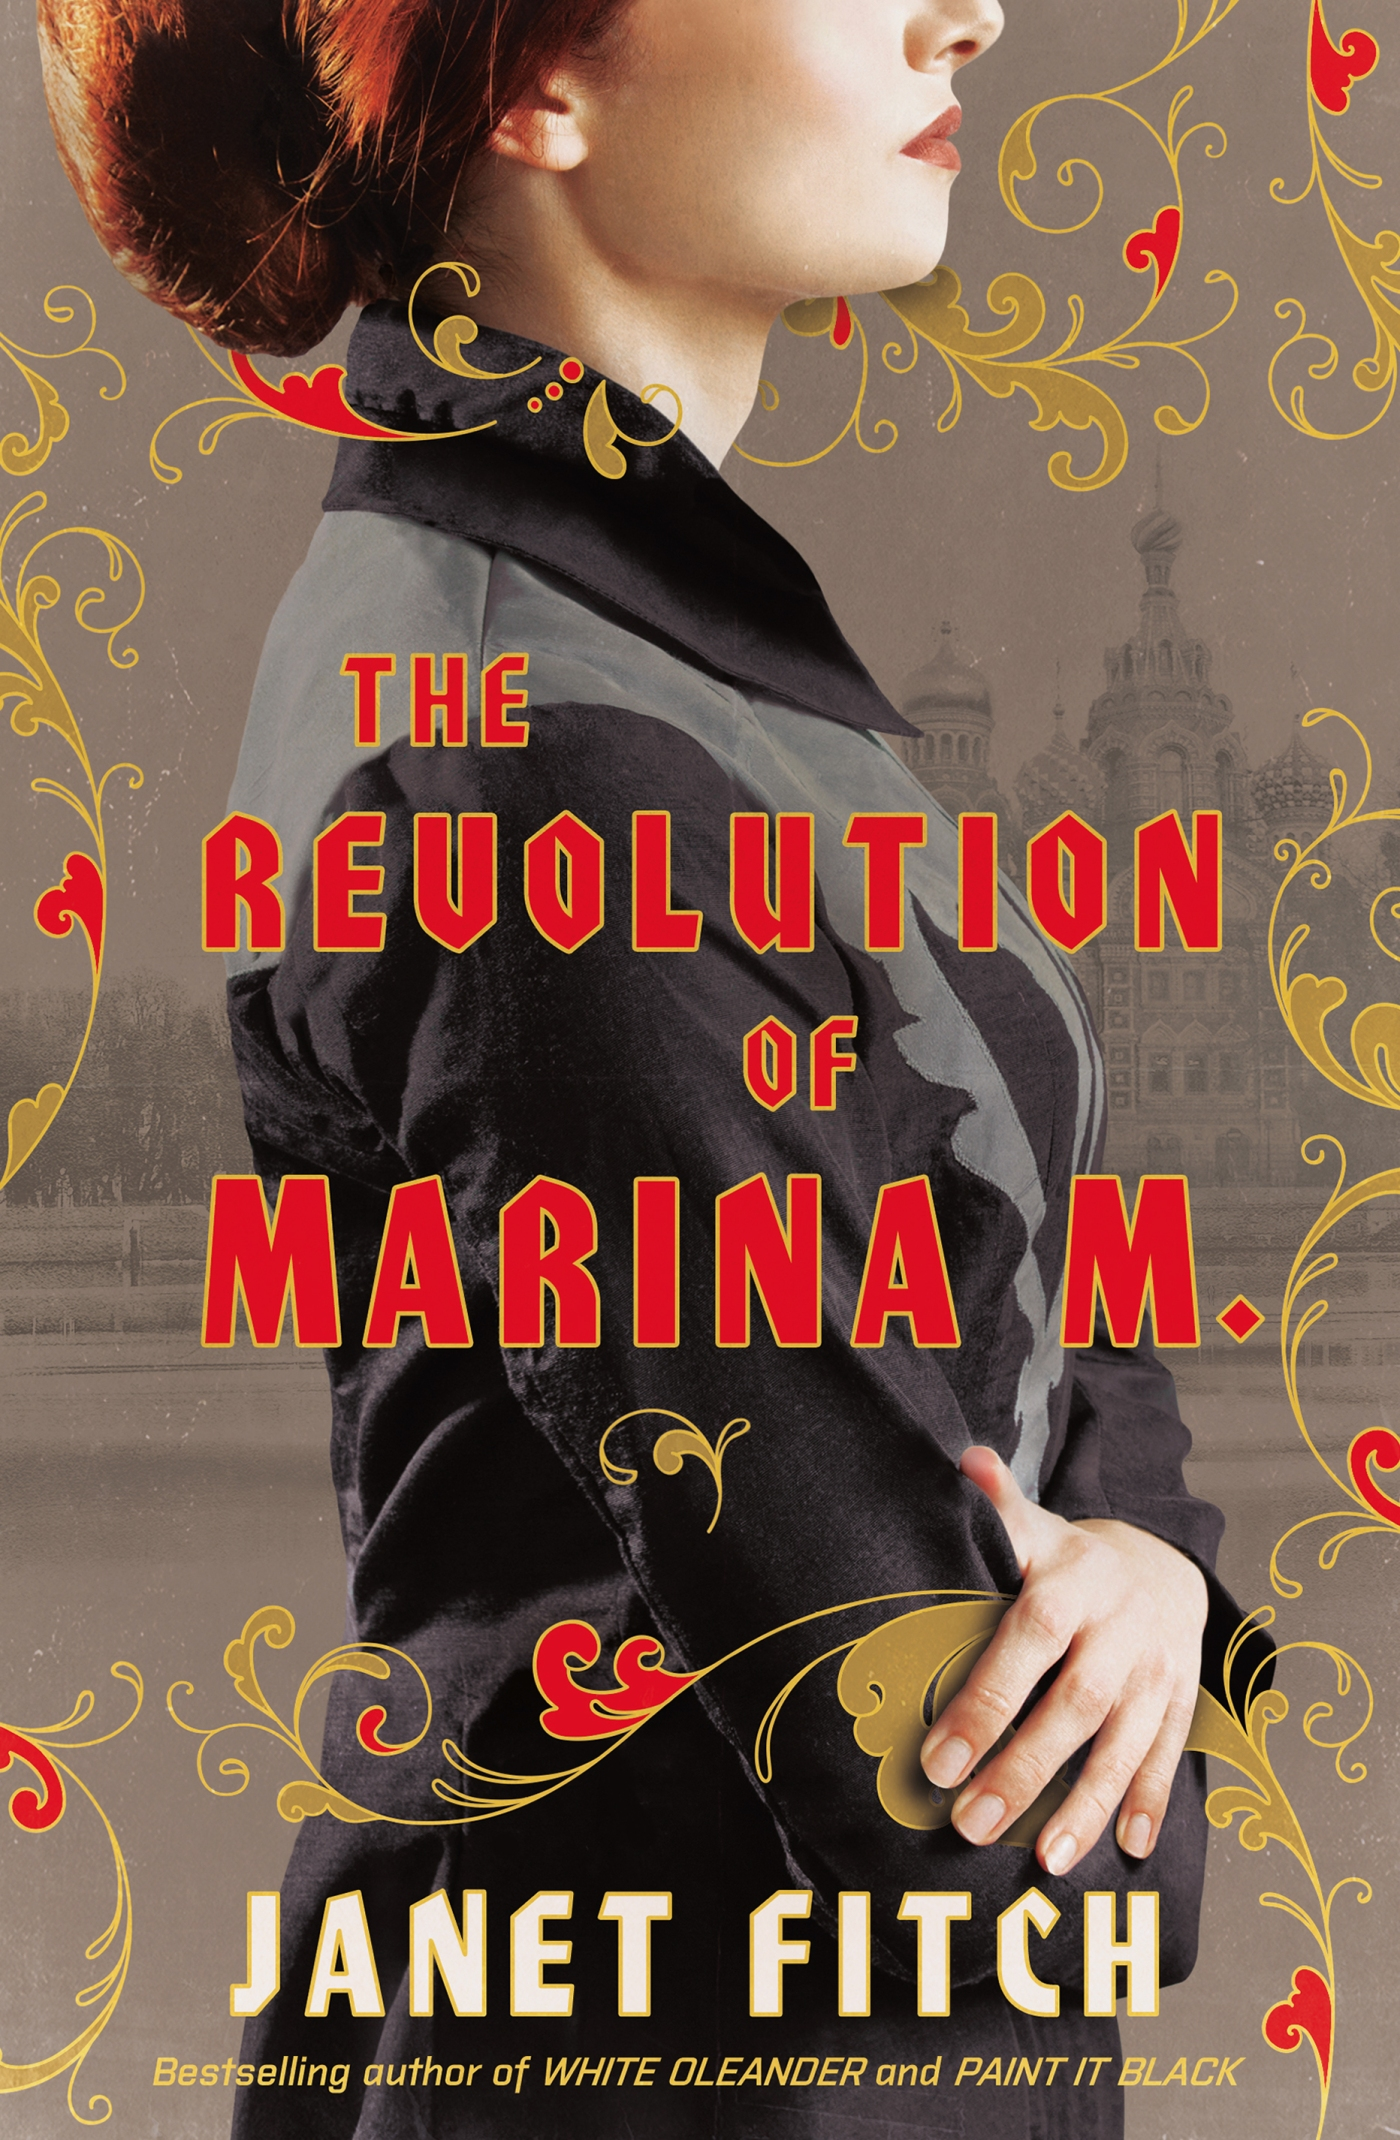 About The Revolution of Marina M  | Janet Fitch's Blog